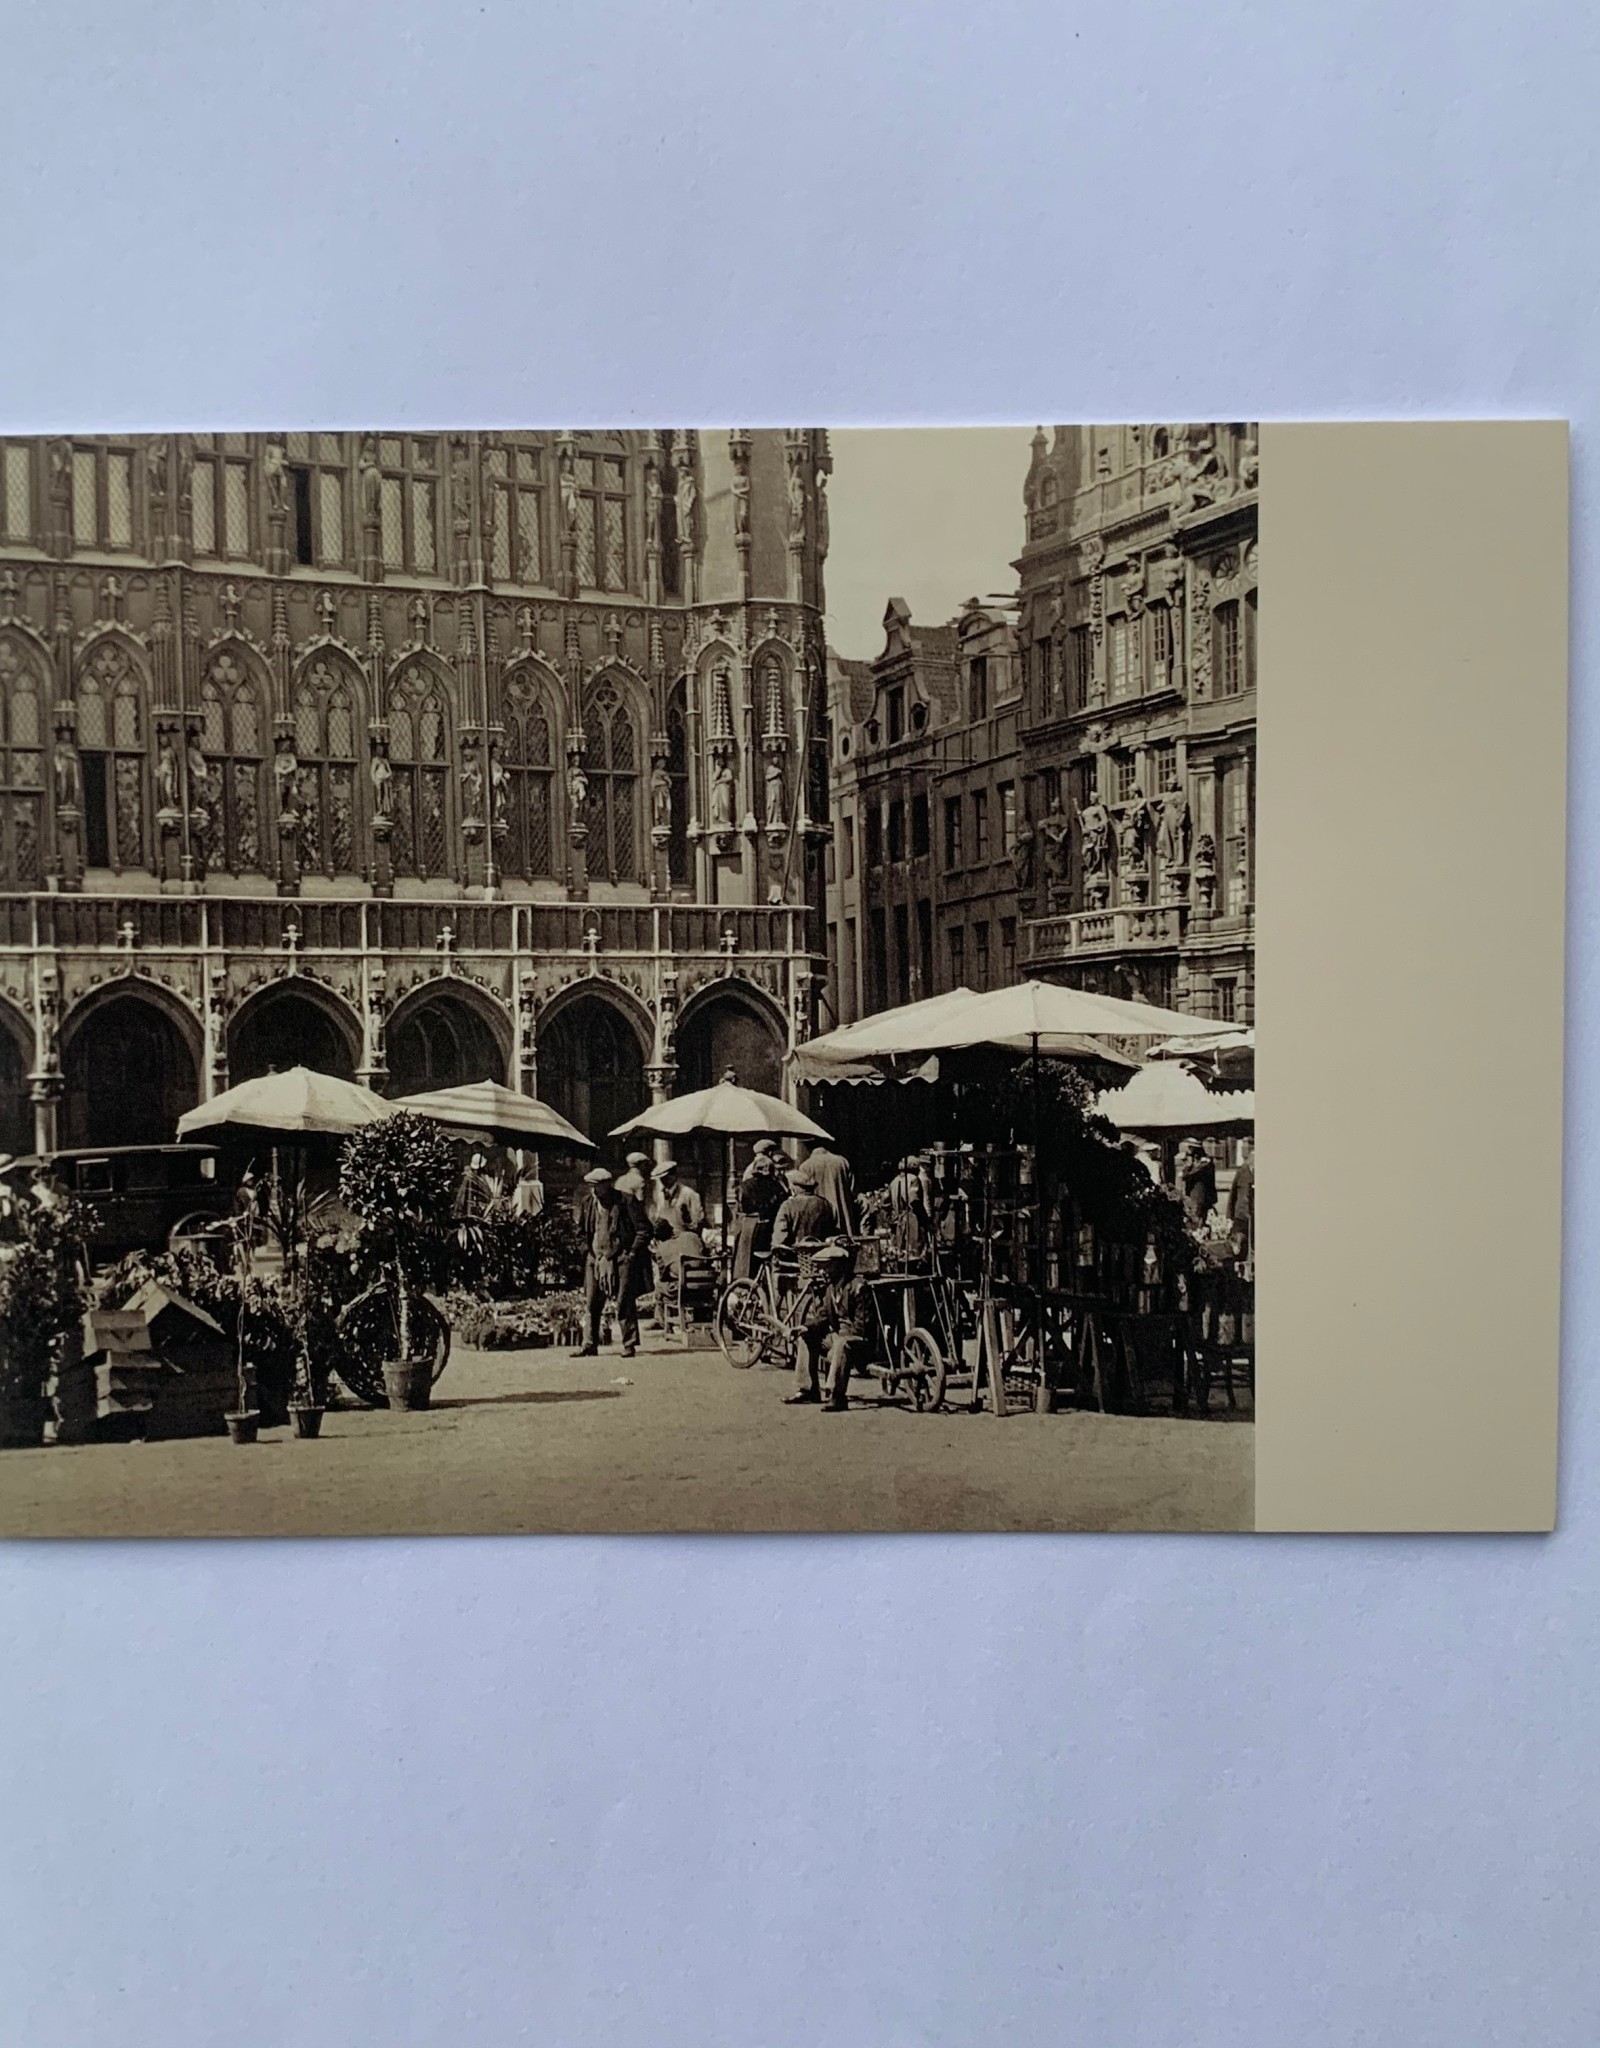 Plaizier Flower market at the Grand Place, Brussels